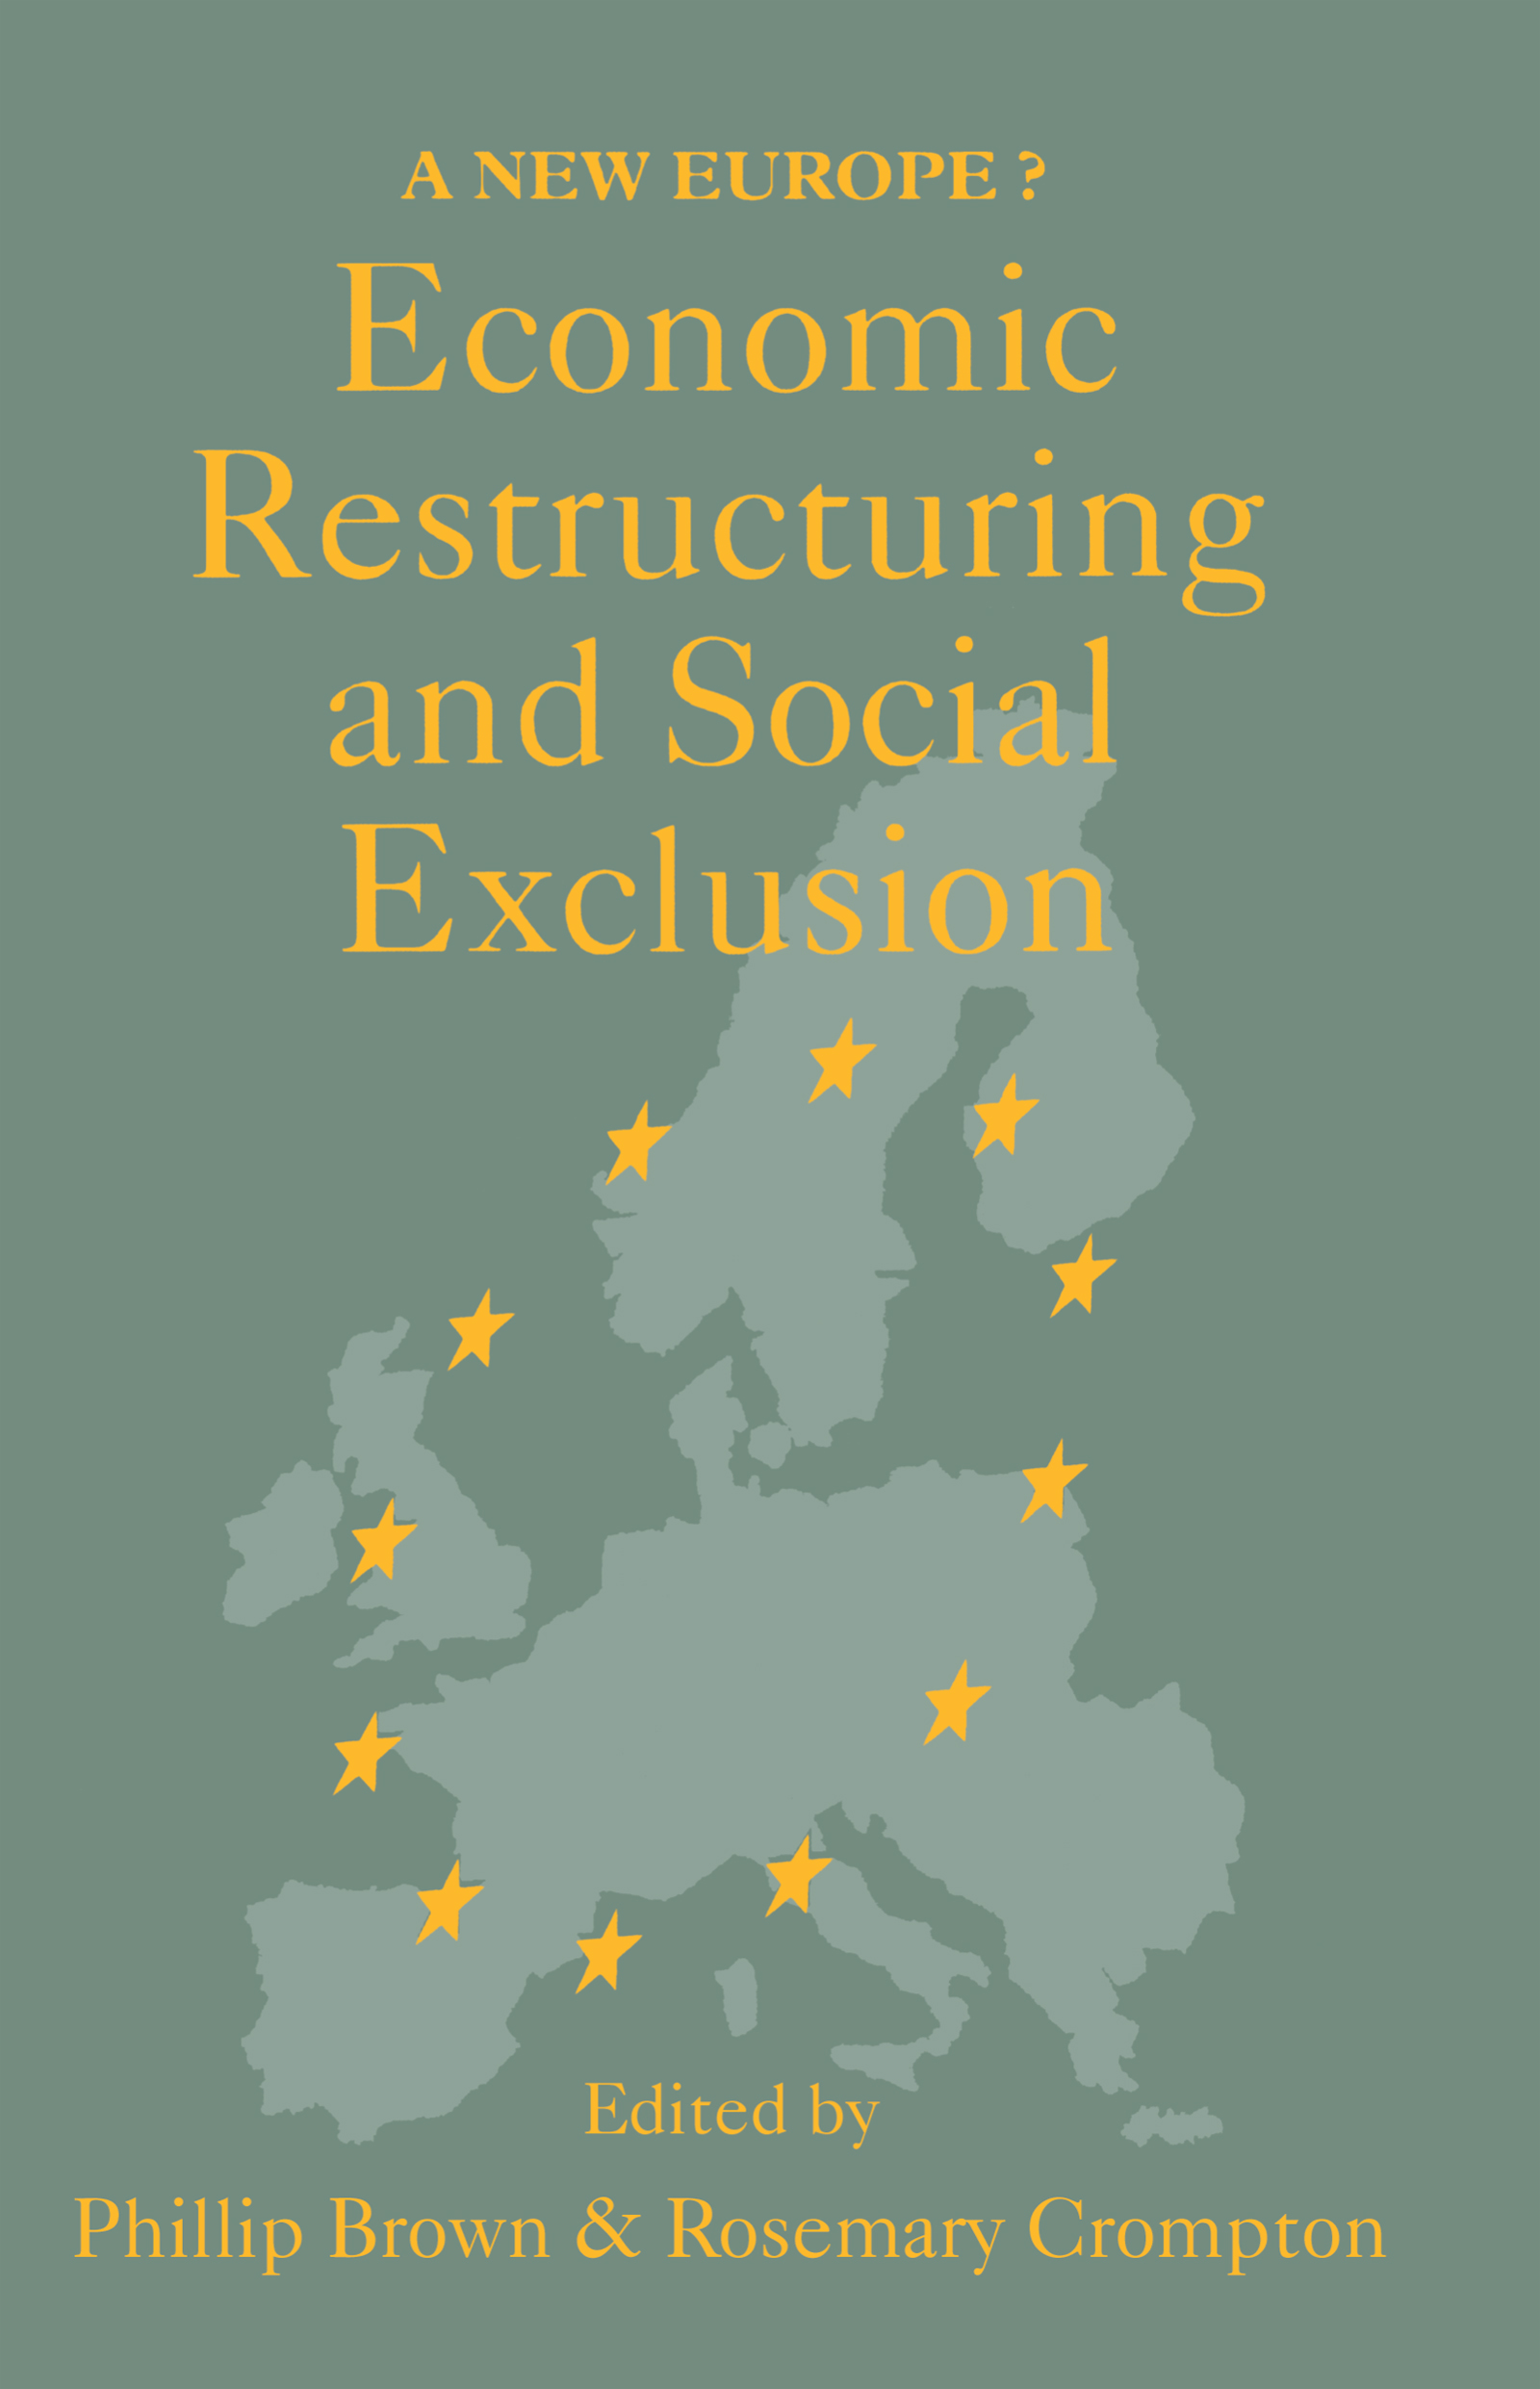 Economic Restructuring And Social Exclusion: A New Europe? book cover